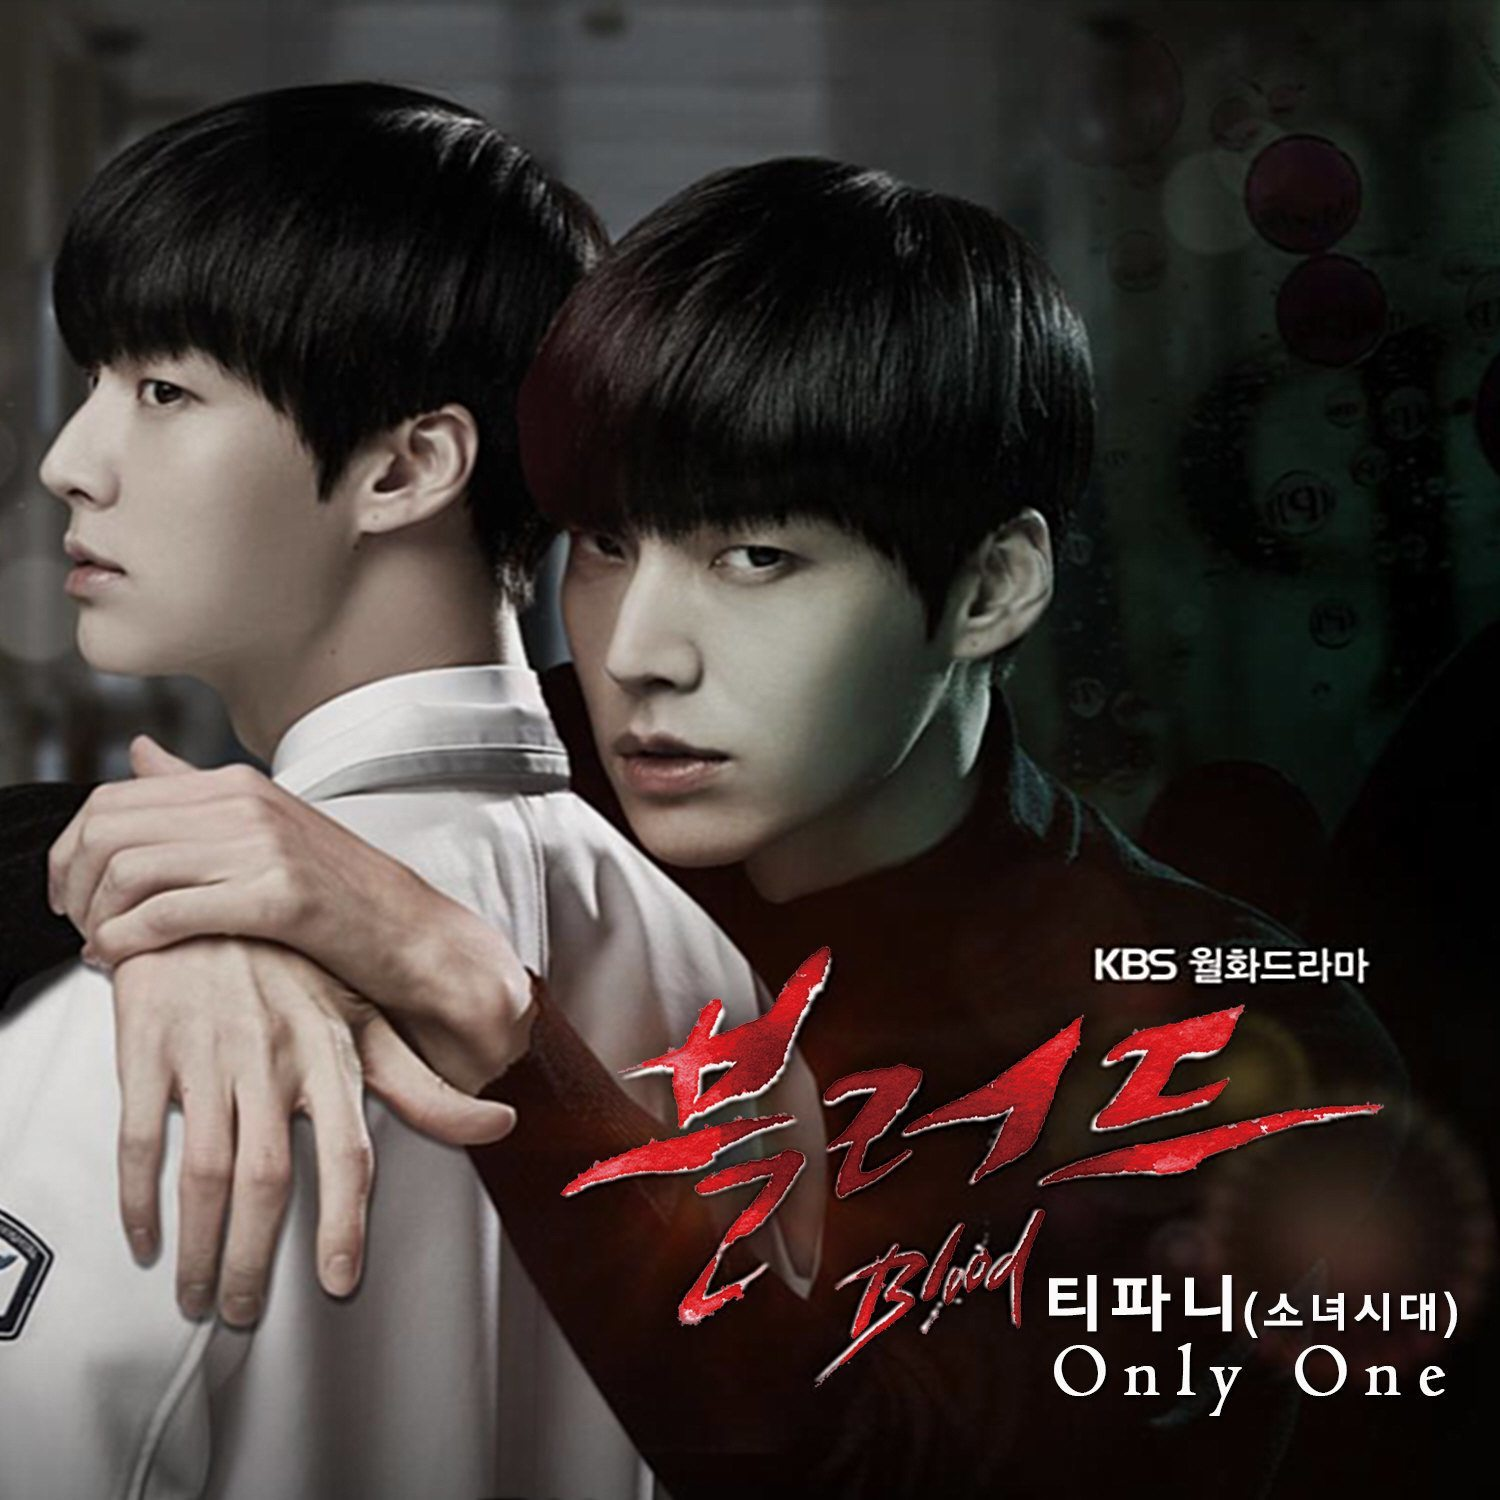 Girls' Generation Tiffany - Only One for KBS drama Blood OST Part 1